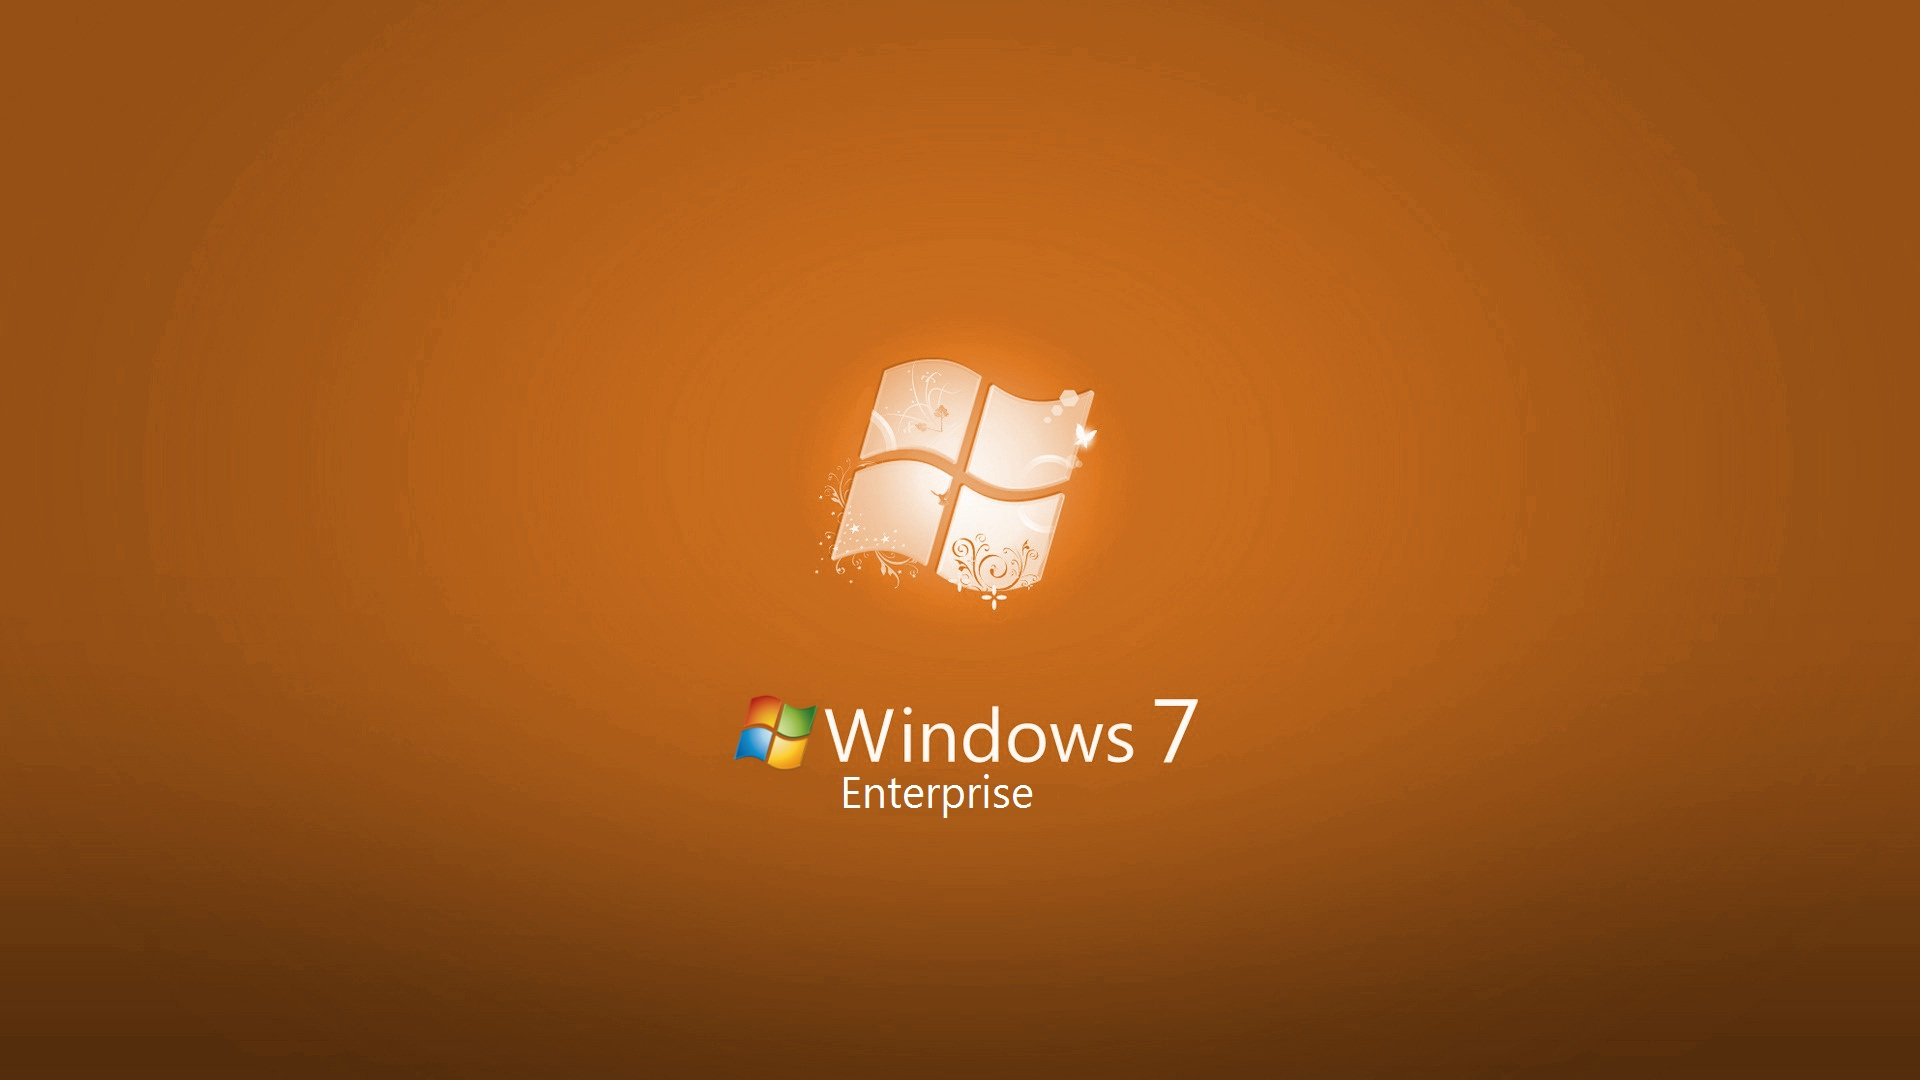 Windows 7 Wallpaper 12